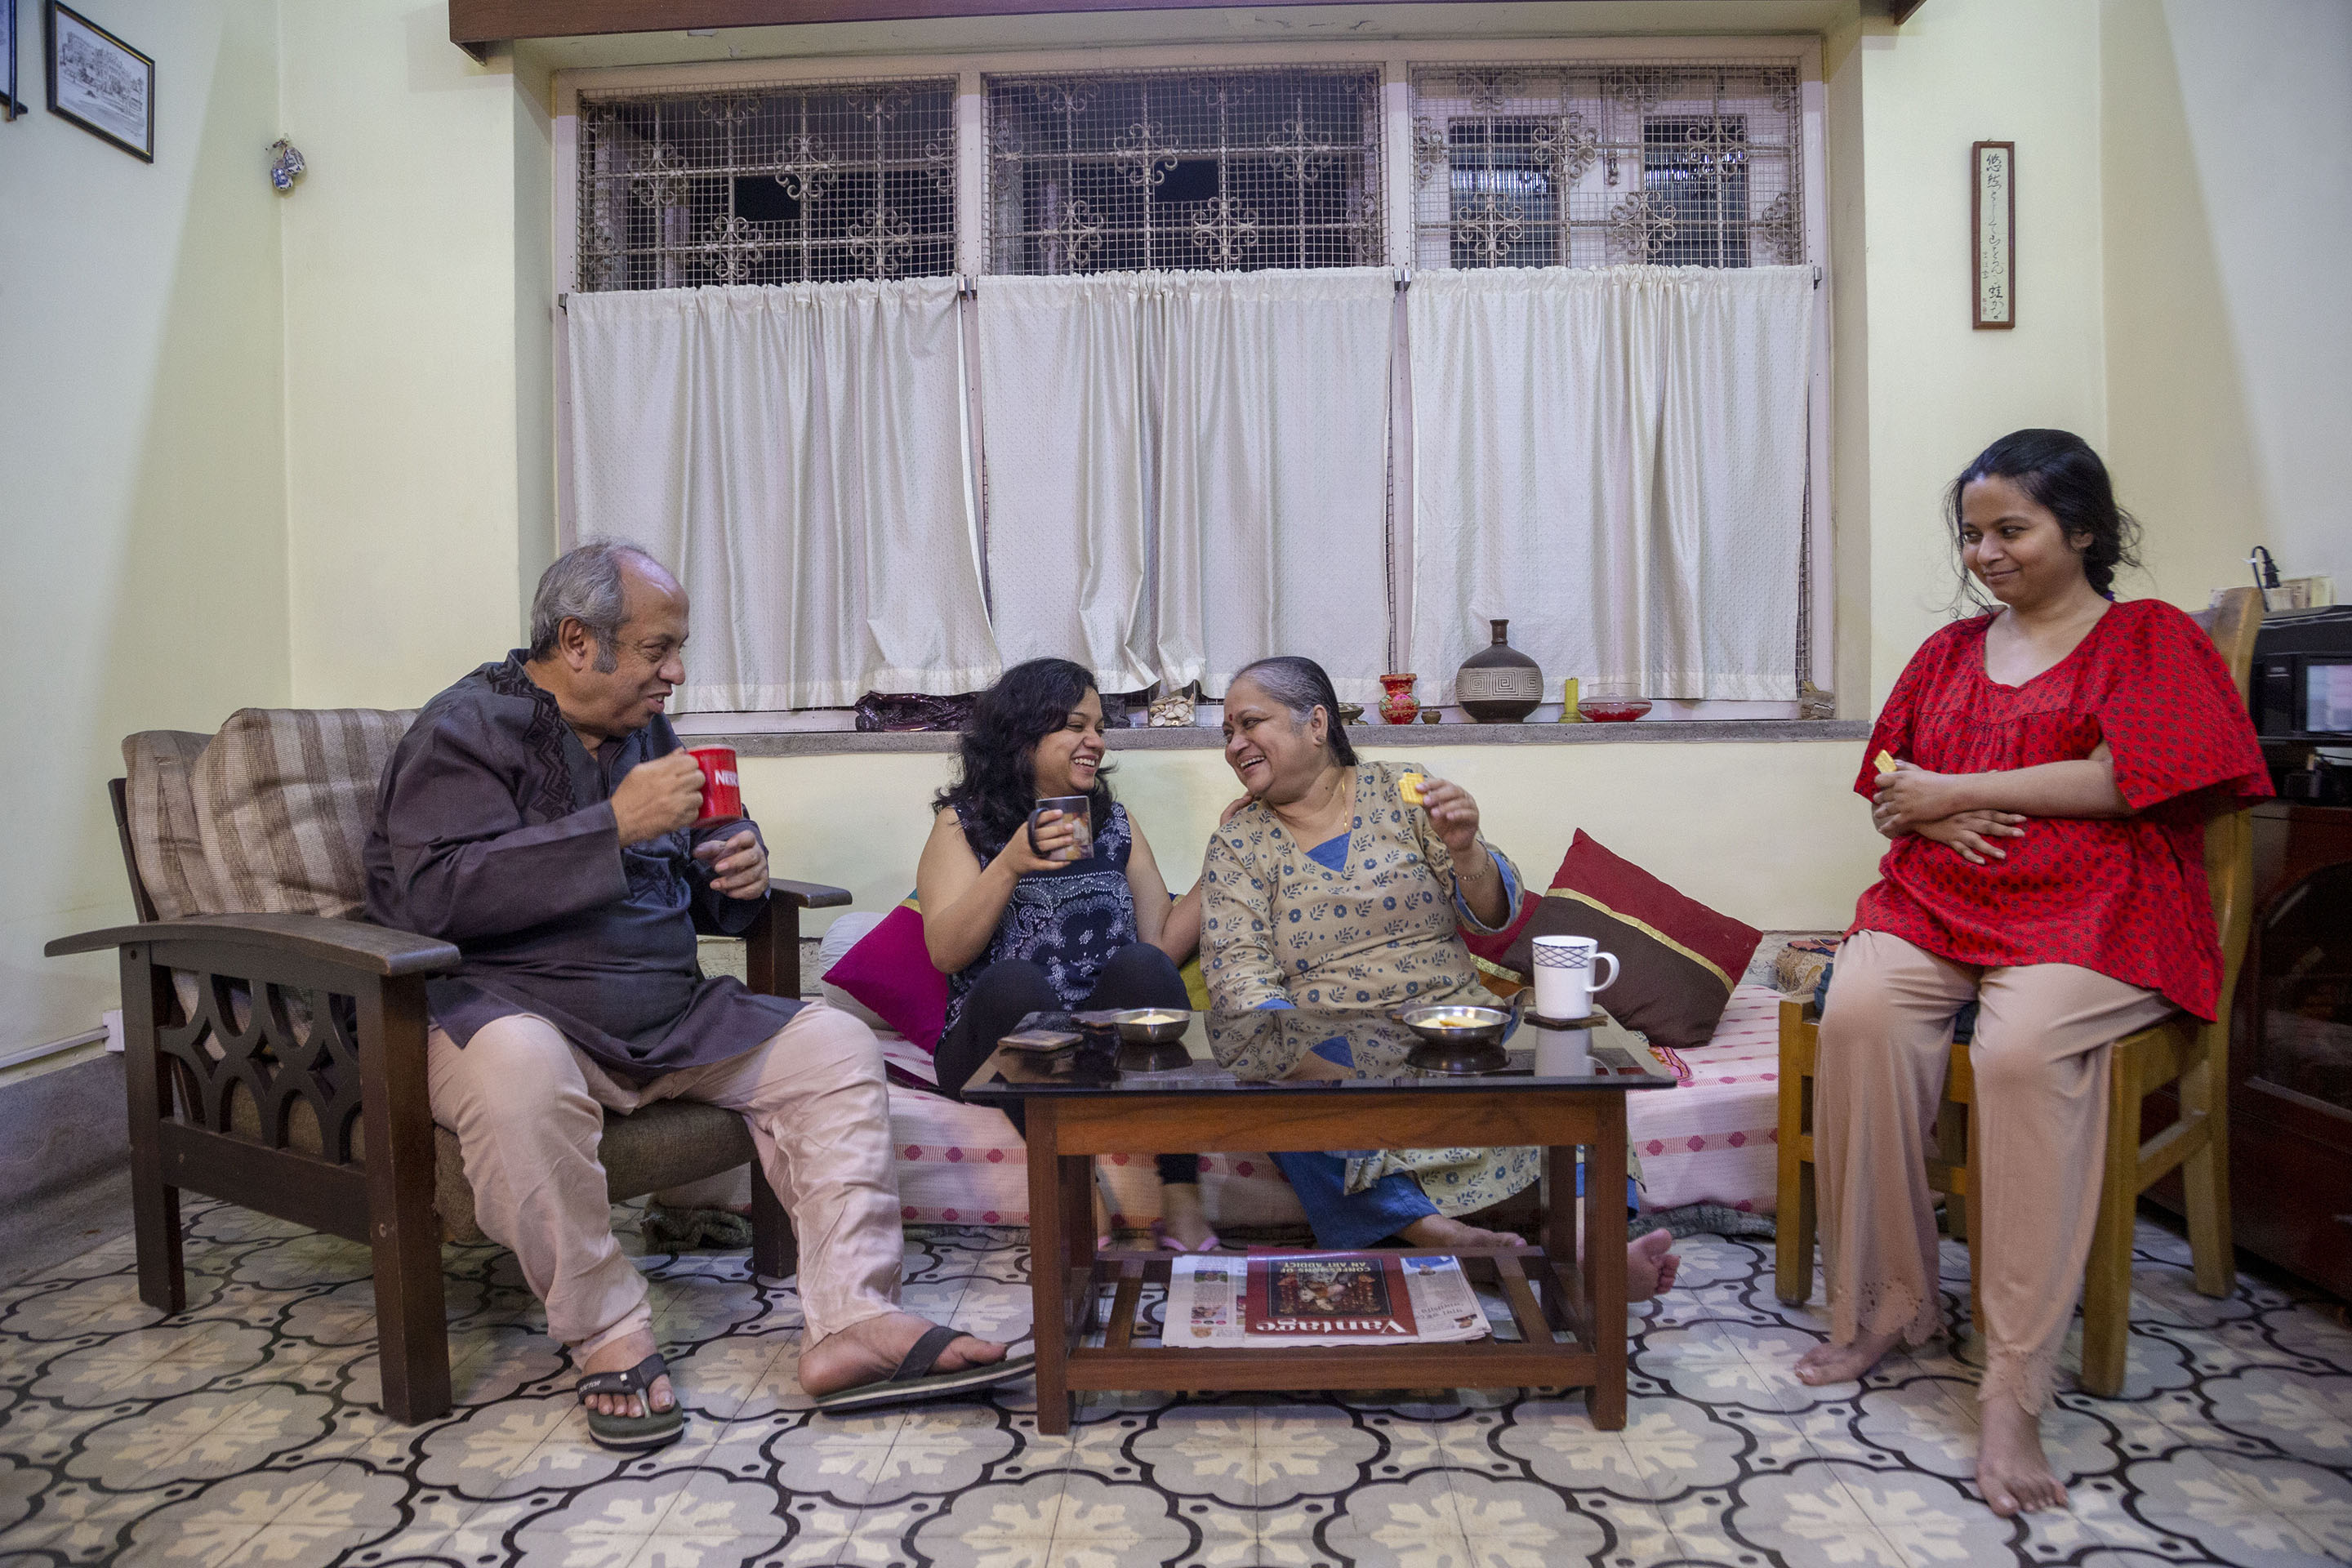 Soumita and her family, from left to right: father Amit Kumar Basu (68), sister Sayani Basu (34), mother Amita Roychowdhury Basu (60) and Soumita. Sayani and Amita are sitting on a divan while Amit sits on a wooden sofa and Soumita, in a wooden chair. There is a teapoy in the centre on which there are two steel plates of biscuits and a white mug. Amit, leaning against two fat rectangular cushions with light and dark brown stripes, holds a red mug. He wears a deep purple kurta and pinkish brown pyjamas. Sayani, holding a mug, is in a sleeveless deep blue kurta with sequins and embroidery on the front, and a deep blue churidar. Amita, in a beige and blue printed kameez and blue salwar, holds a cream-coloured biscuit. Soumita in a dark red top and peach-coloured salwar has folded her hands across her midriff. Amit and Soumita are looking towards Sayani and Amita who are looking at each other and laughing as if sharing a joke.